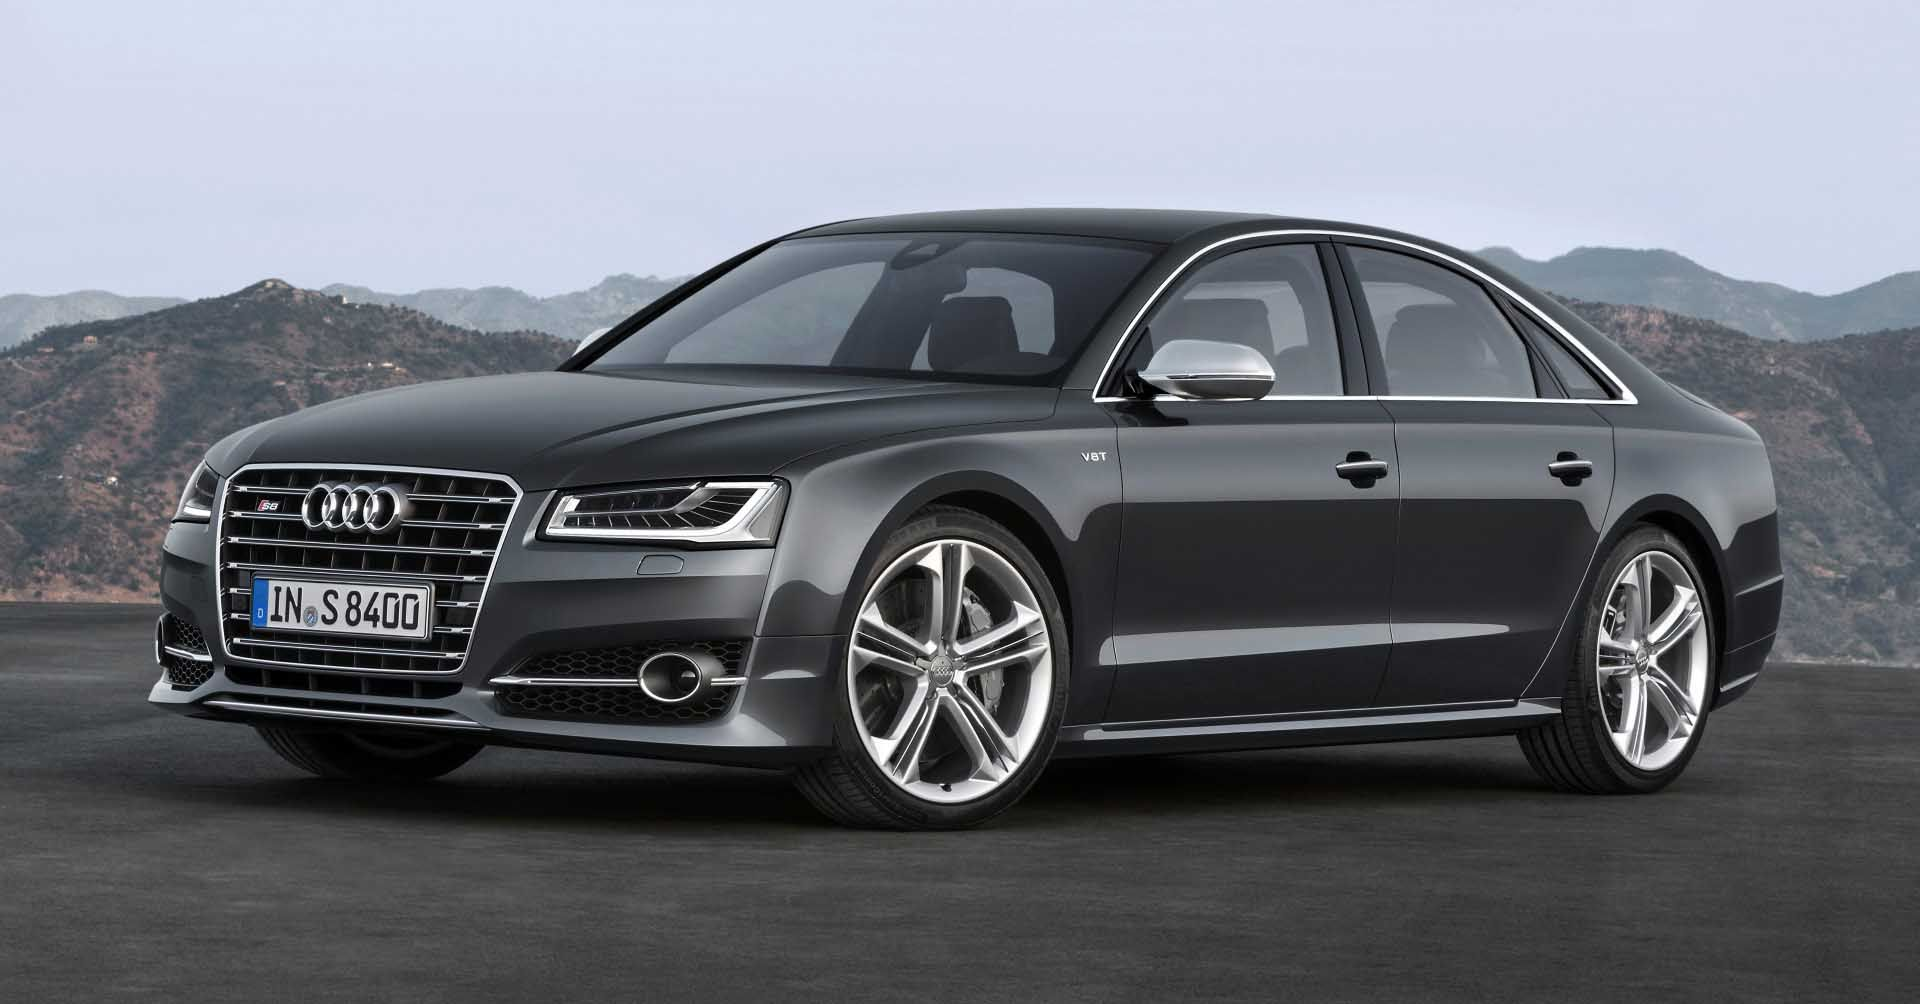 10 Audi A8 Facelift Wallpapers